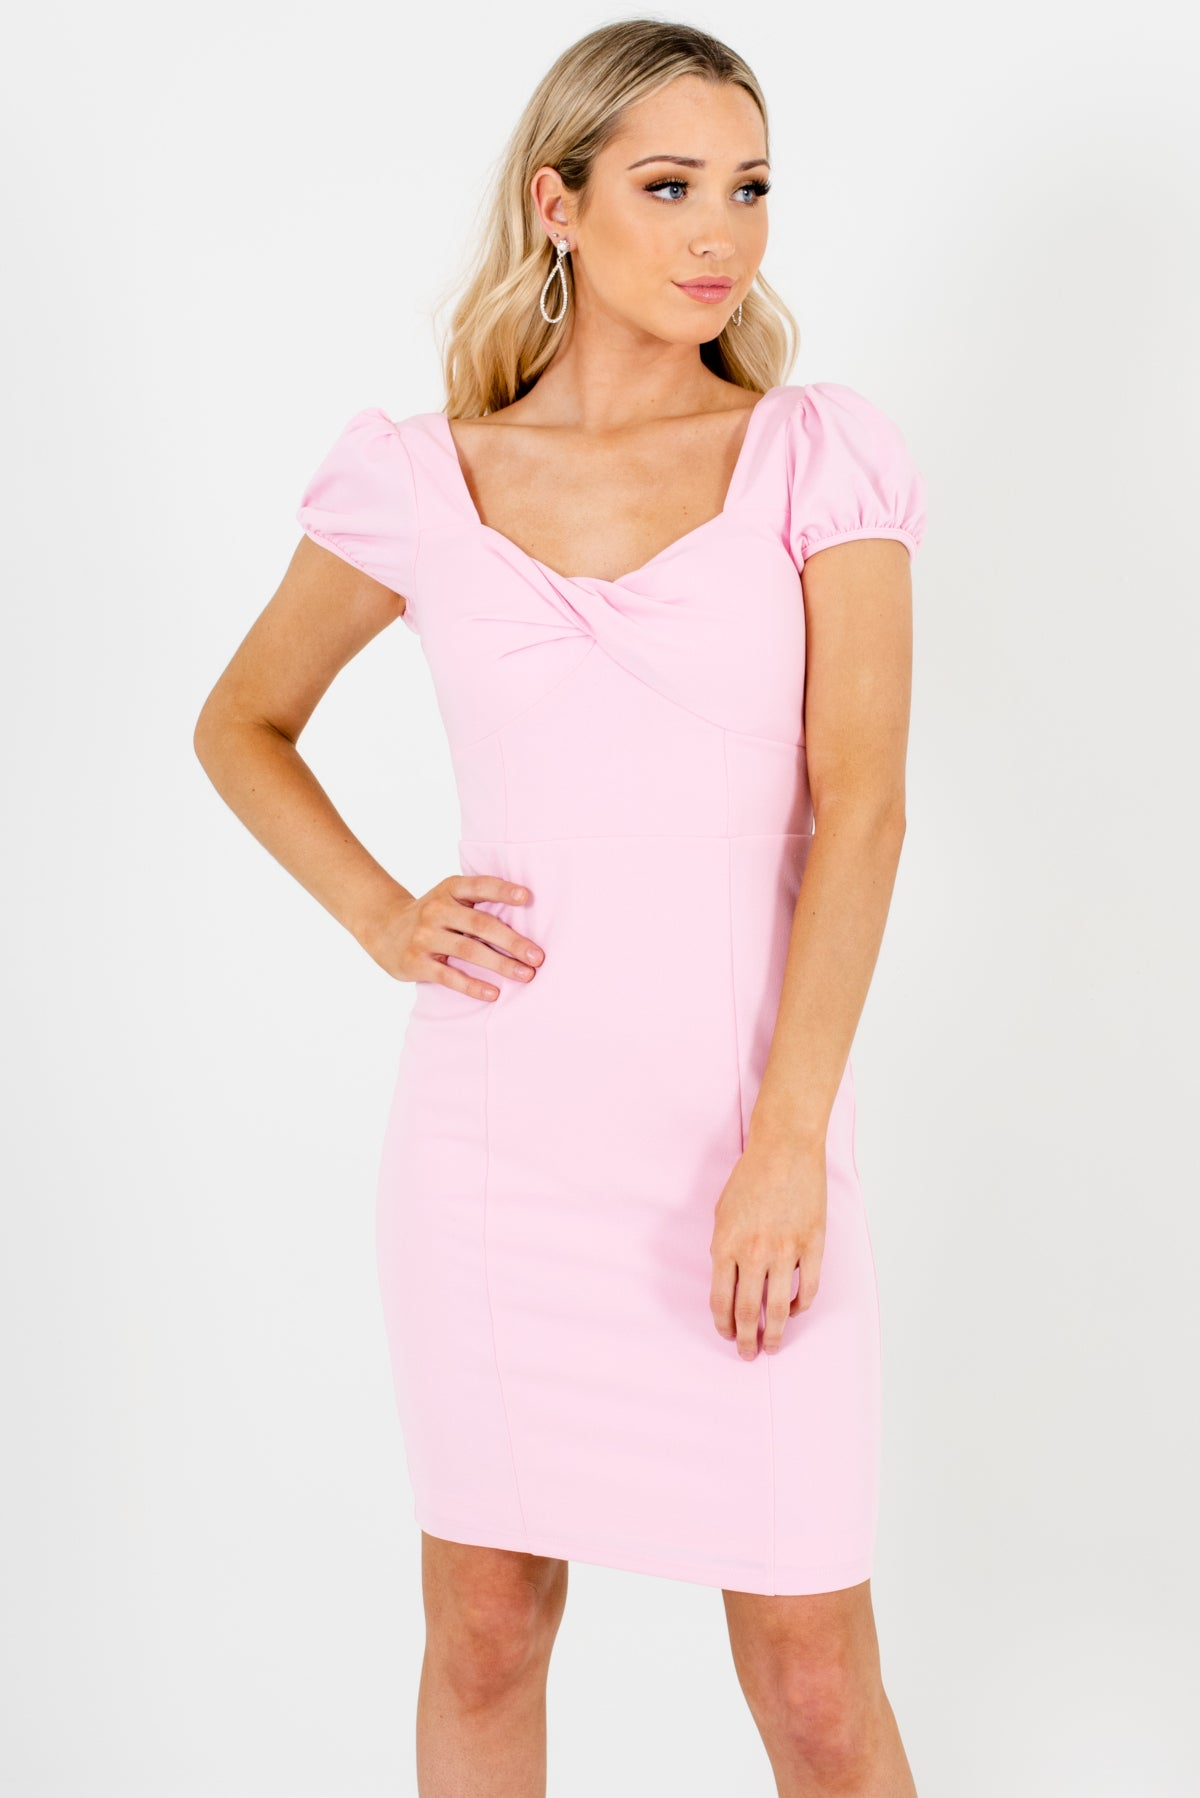 Light Pink High-Quality Stretchy Boutique Mini Dresses for Women